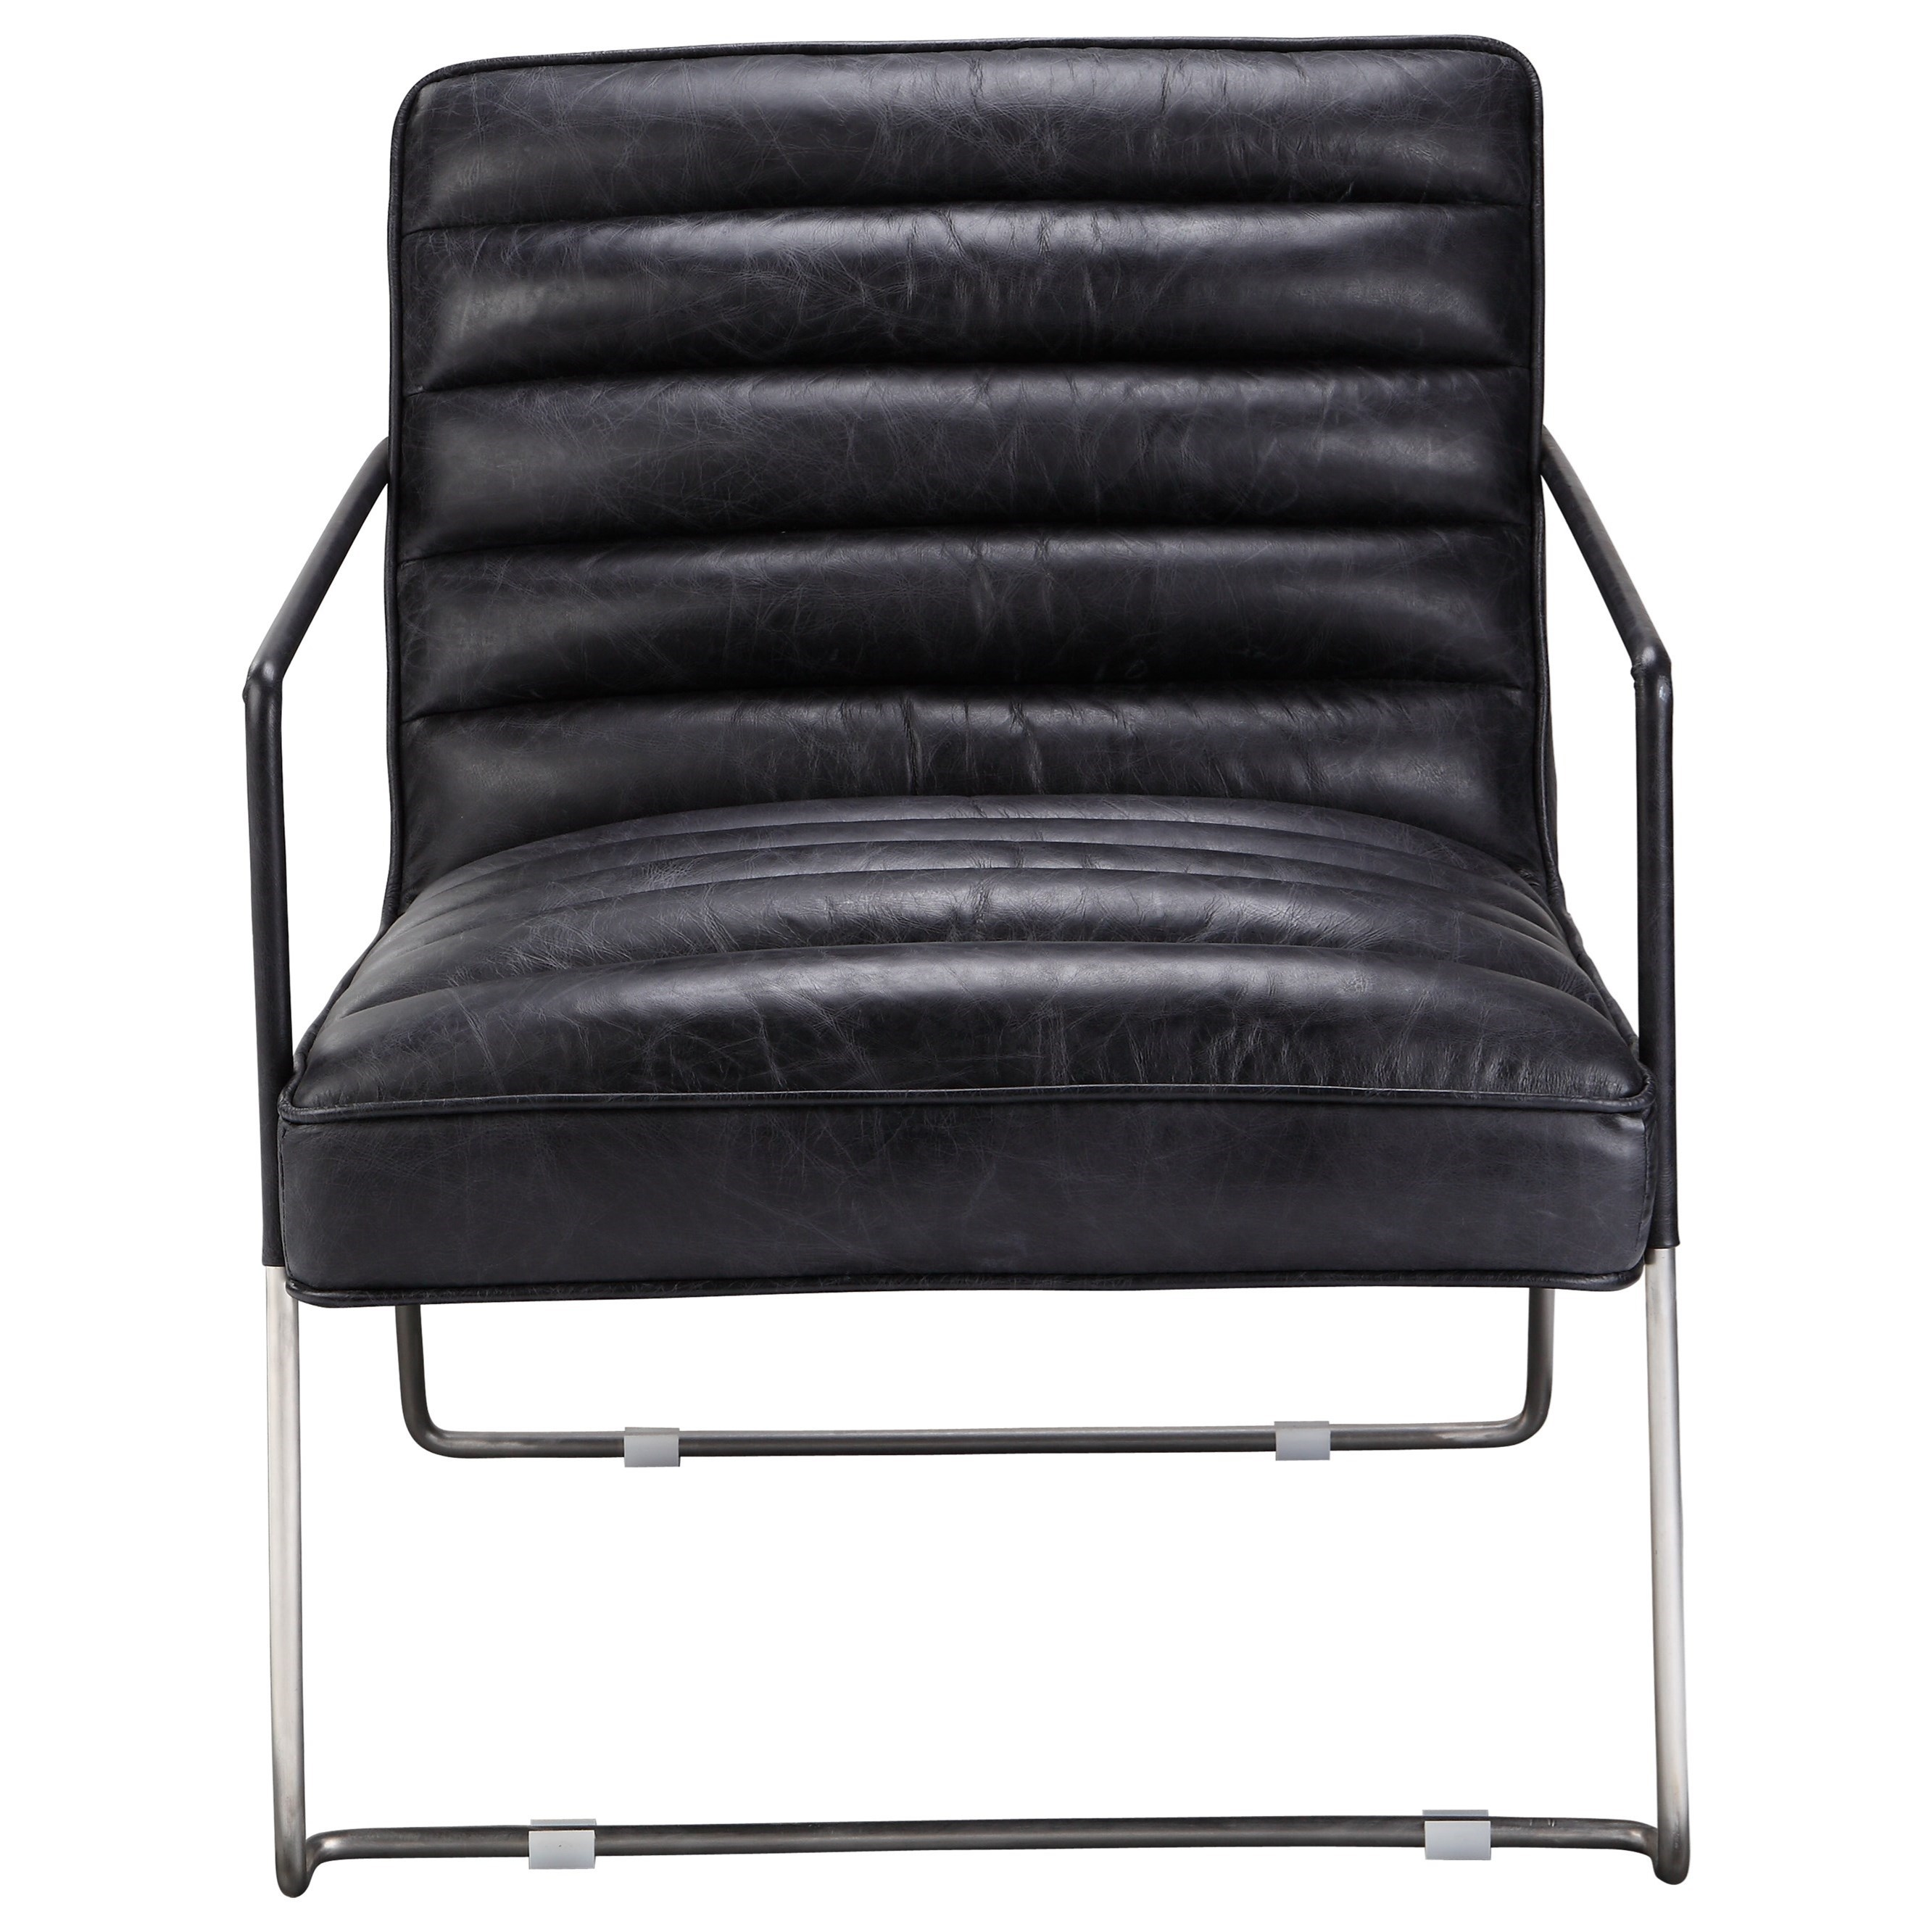 Desmond Club Chair by Moe's Home Collection at Stoney Creek Furniture